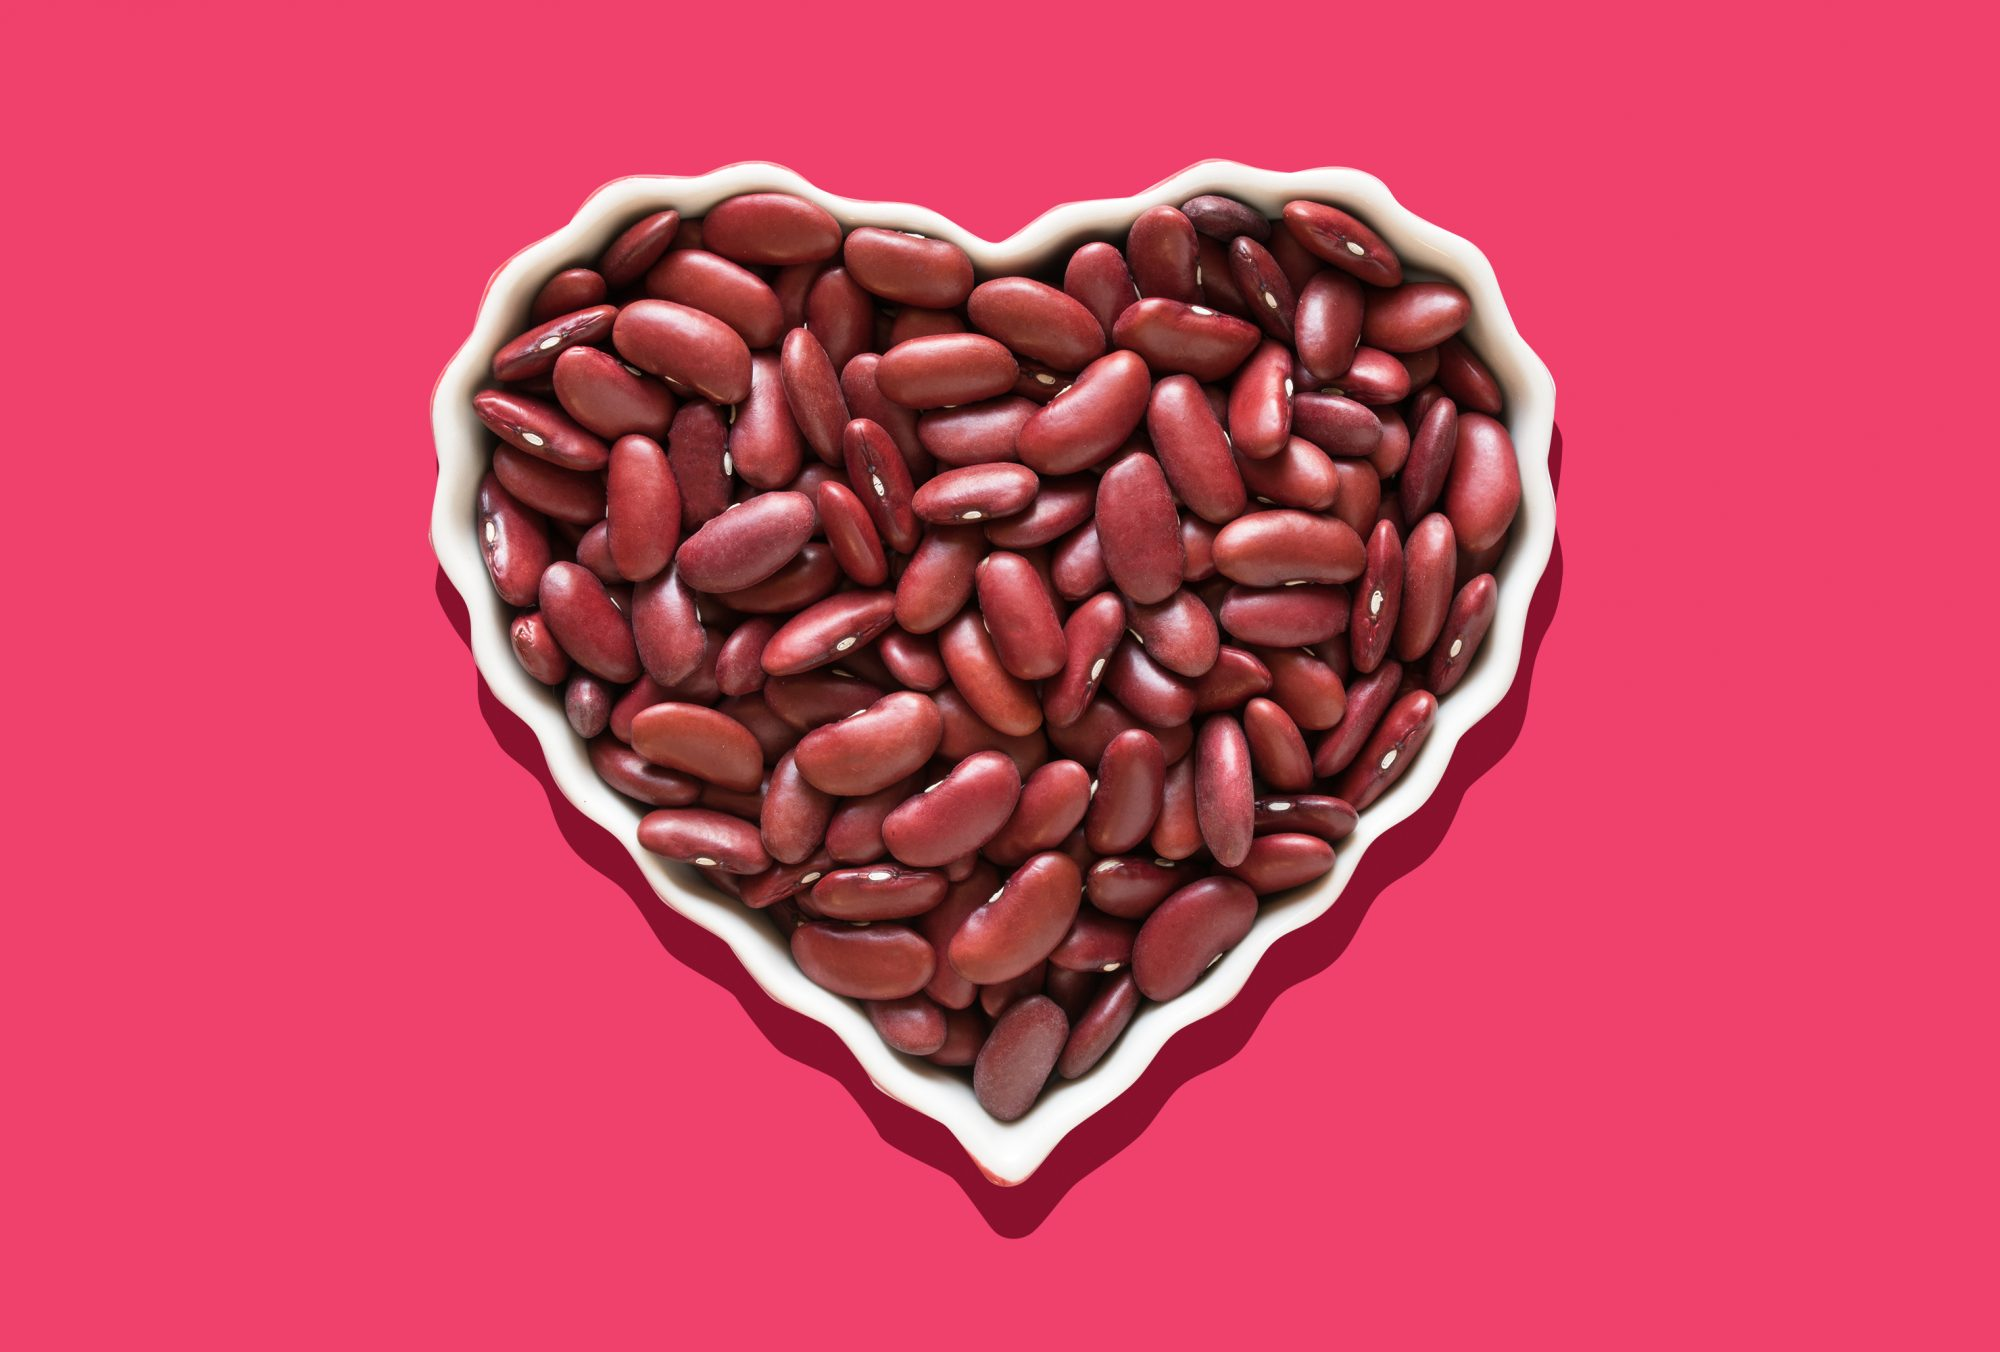 Kidney Beans Benefits: kidney beans in a heart shaped dish